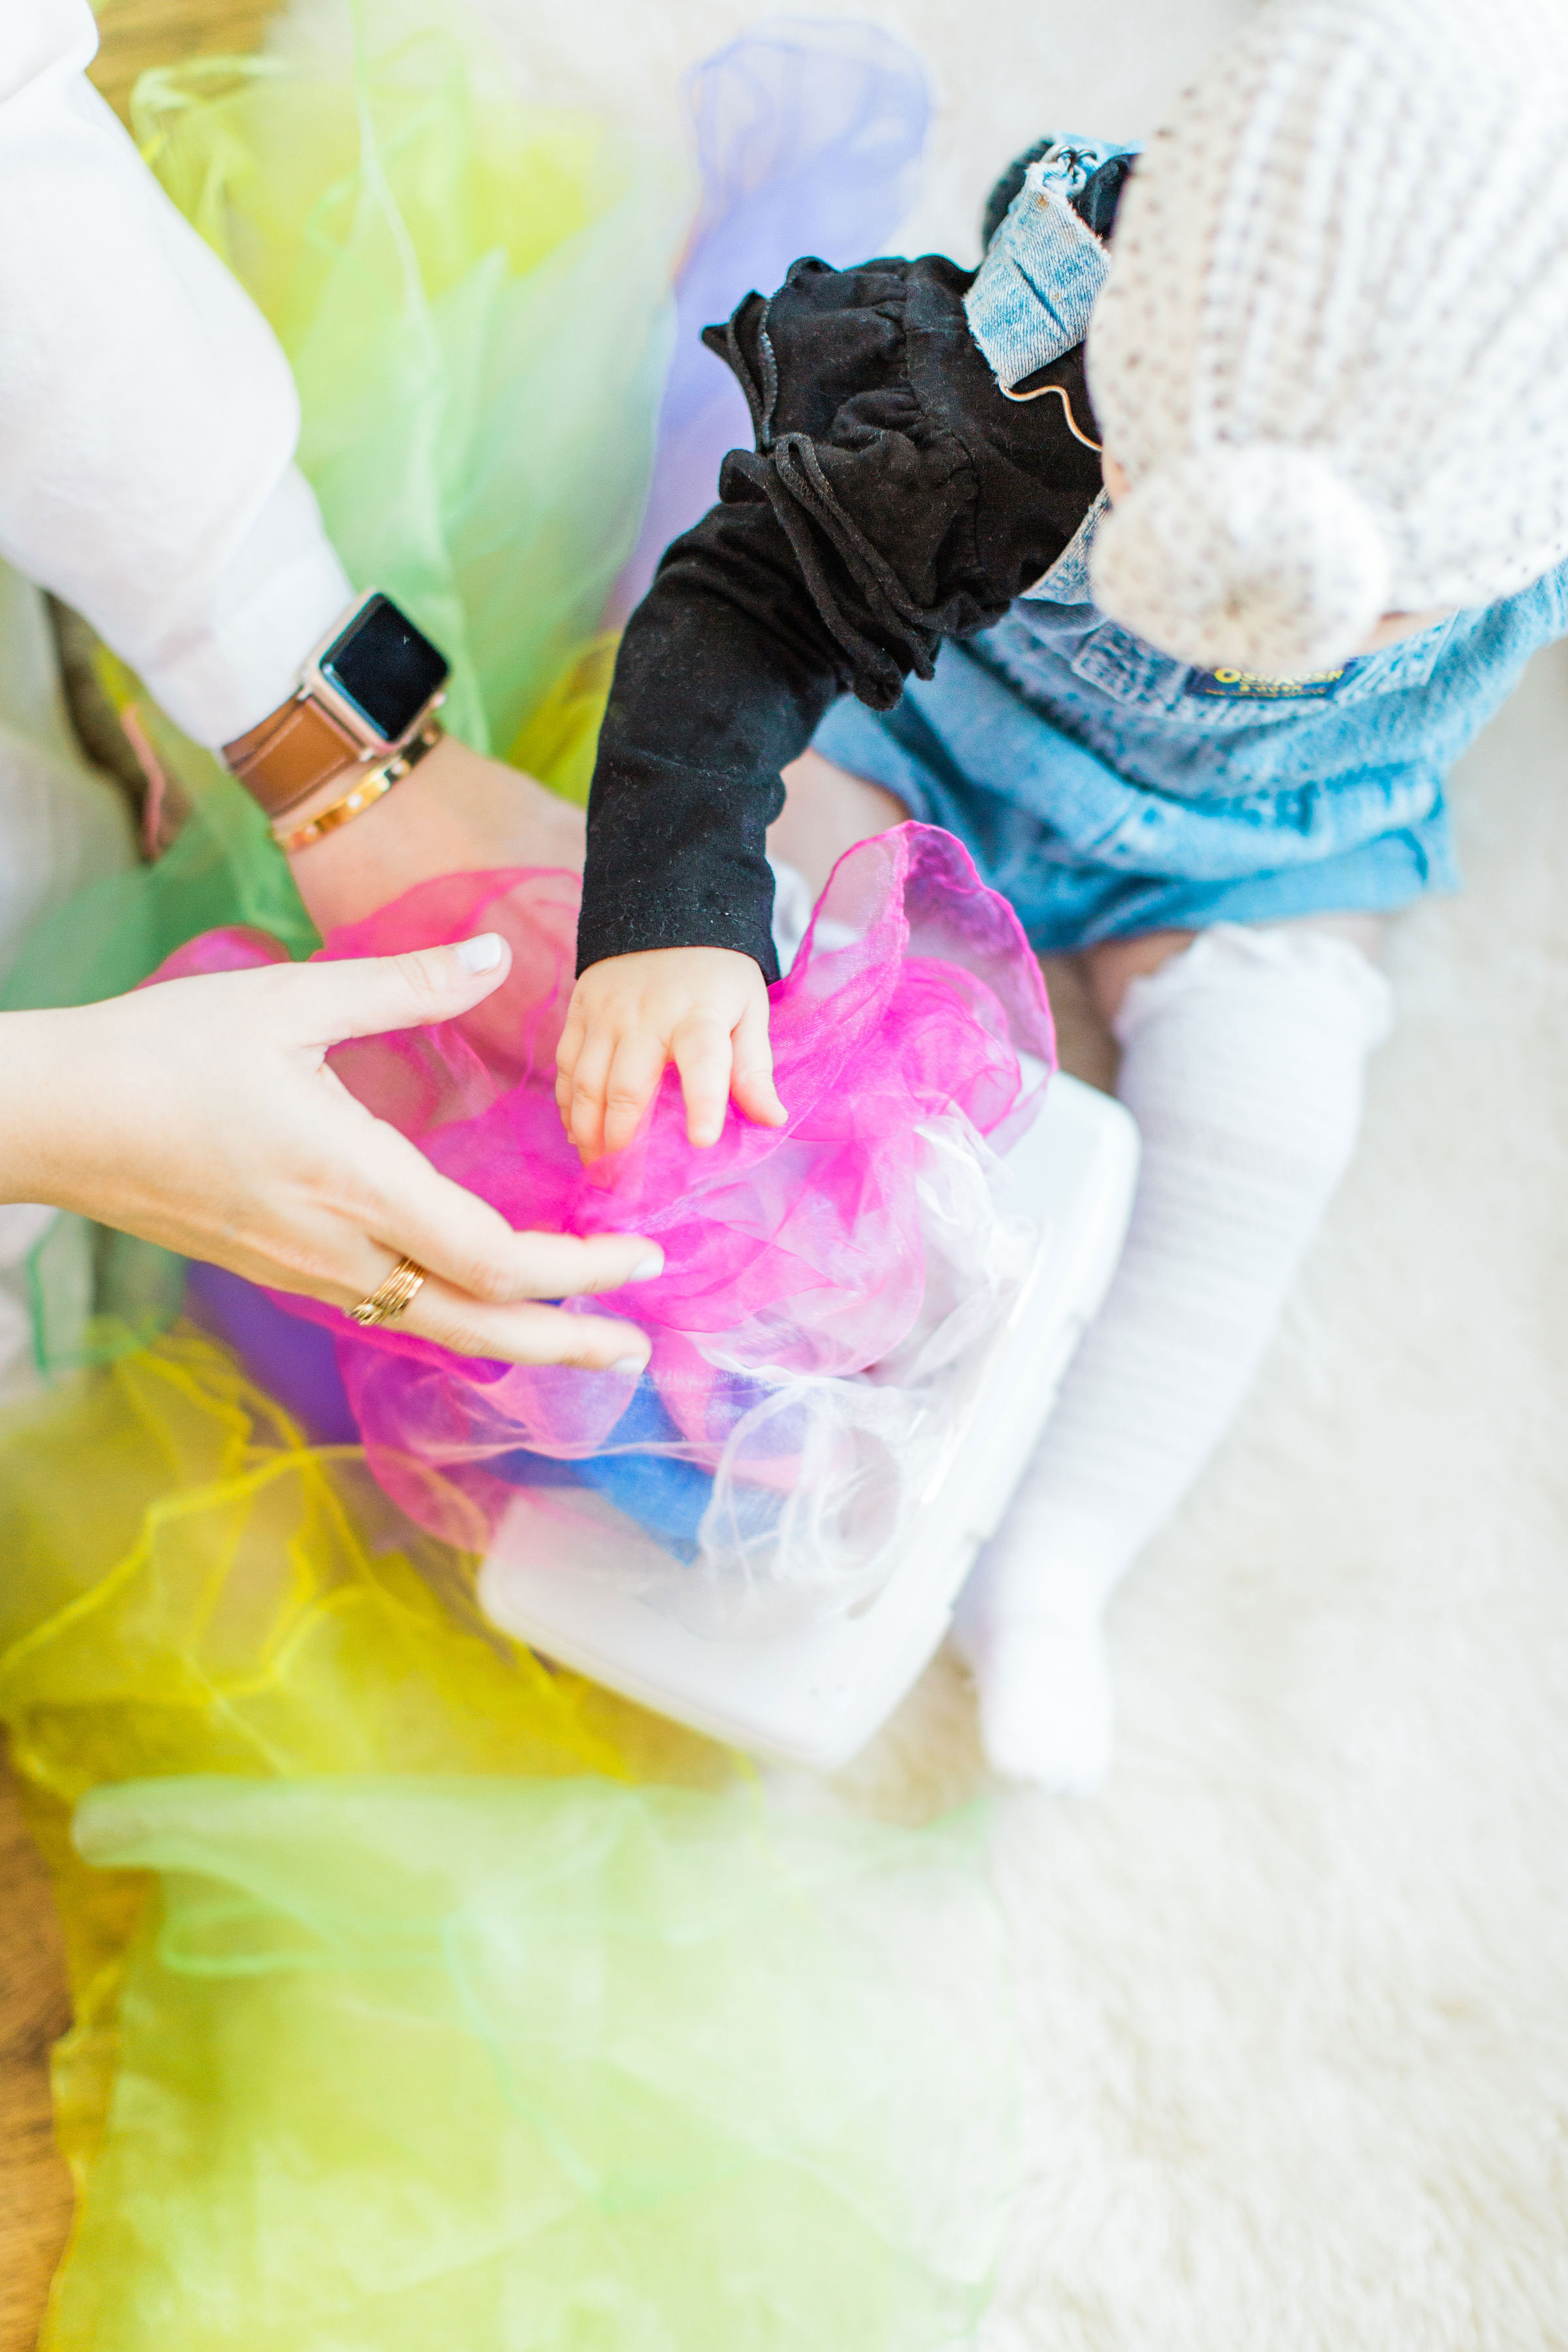 Looking for a fun activity to do with your baby? Make an easy, magic sensory toy using an empty wipes container and inexpensive colorful scarves.